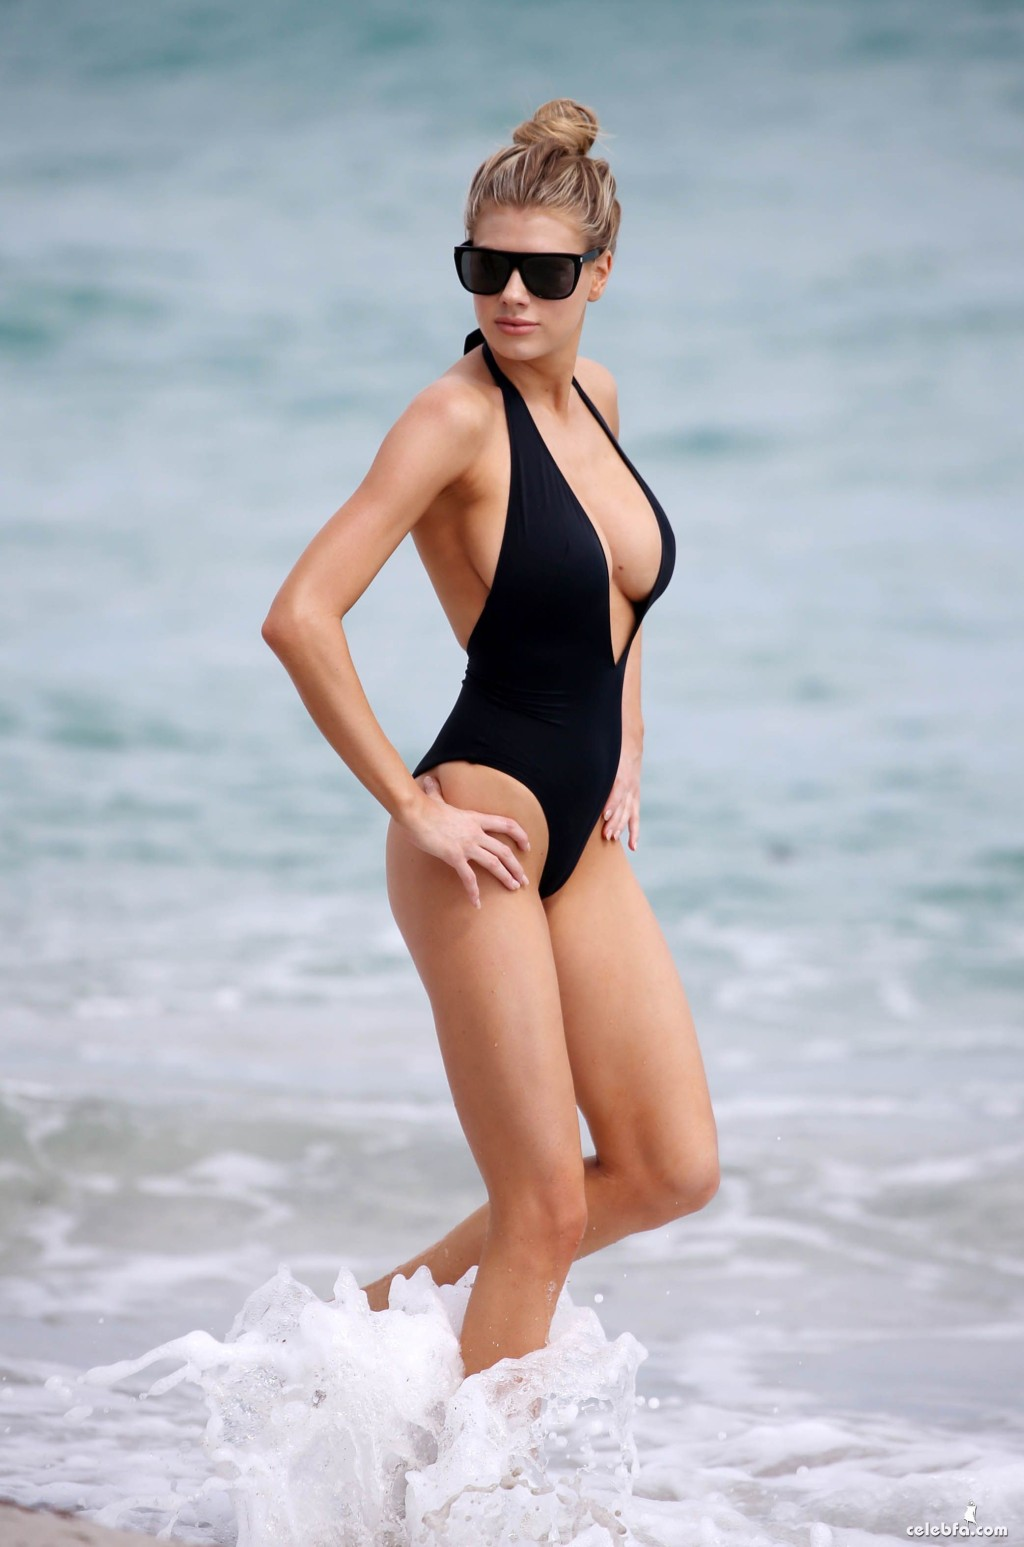 Charlotte McKinney Suffers A Wardrobe Malfunction On The Beach In Miami